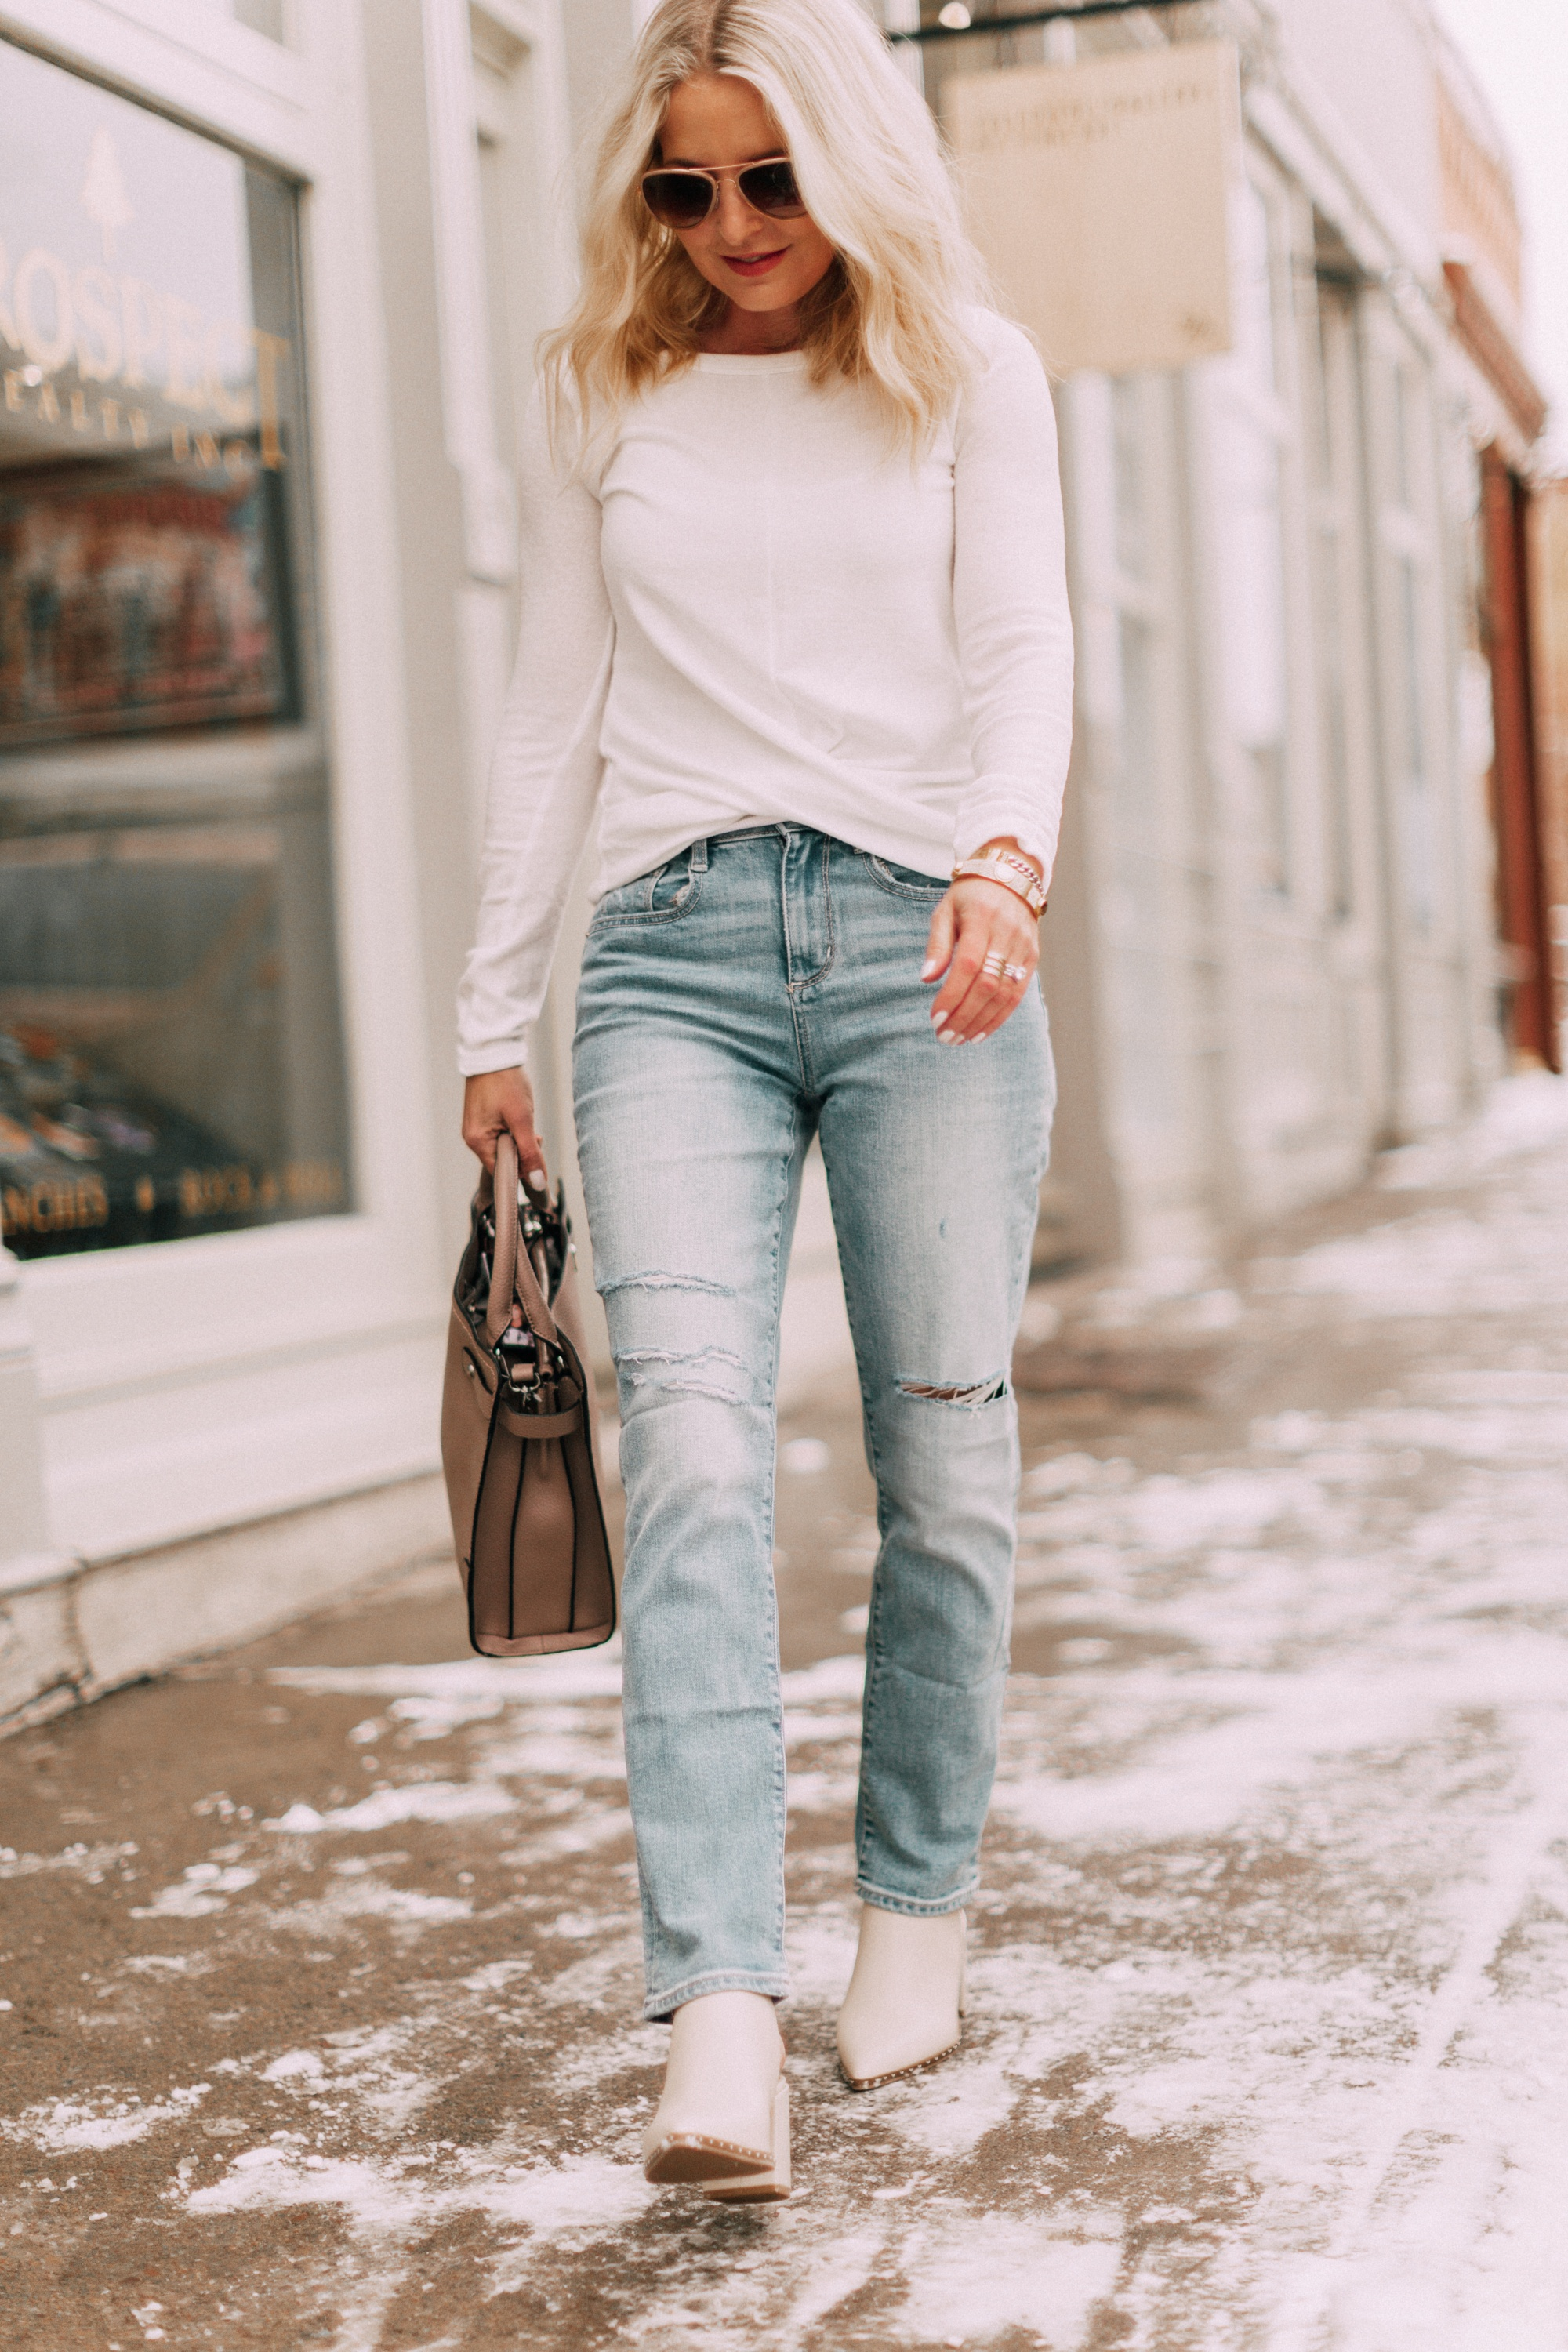 Winter Neutrals, how to wear beautiful white neutrals for winter by fashion blogger over 40, erin busbee of busbeestyle.com in this white top by By&By, light wash jeans by Brooklyn & Bailey, and off white booties by Qupid from JCPenney